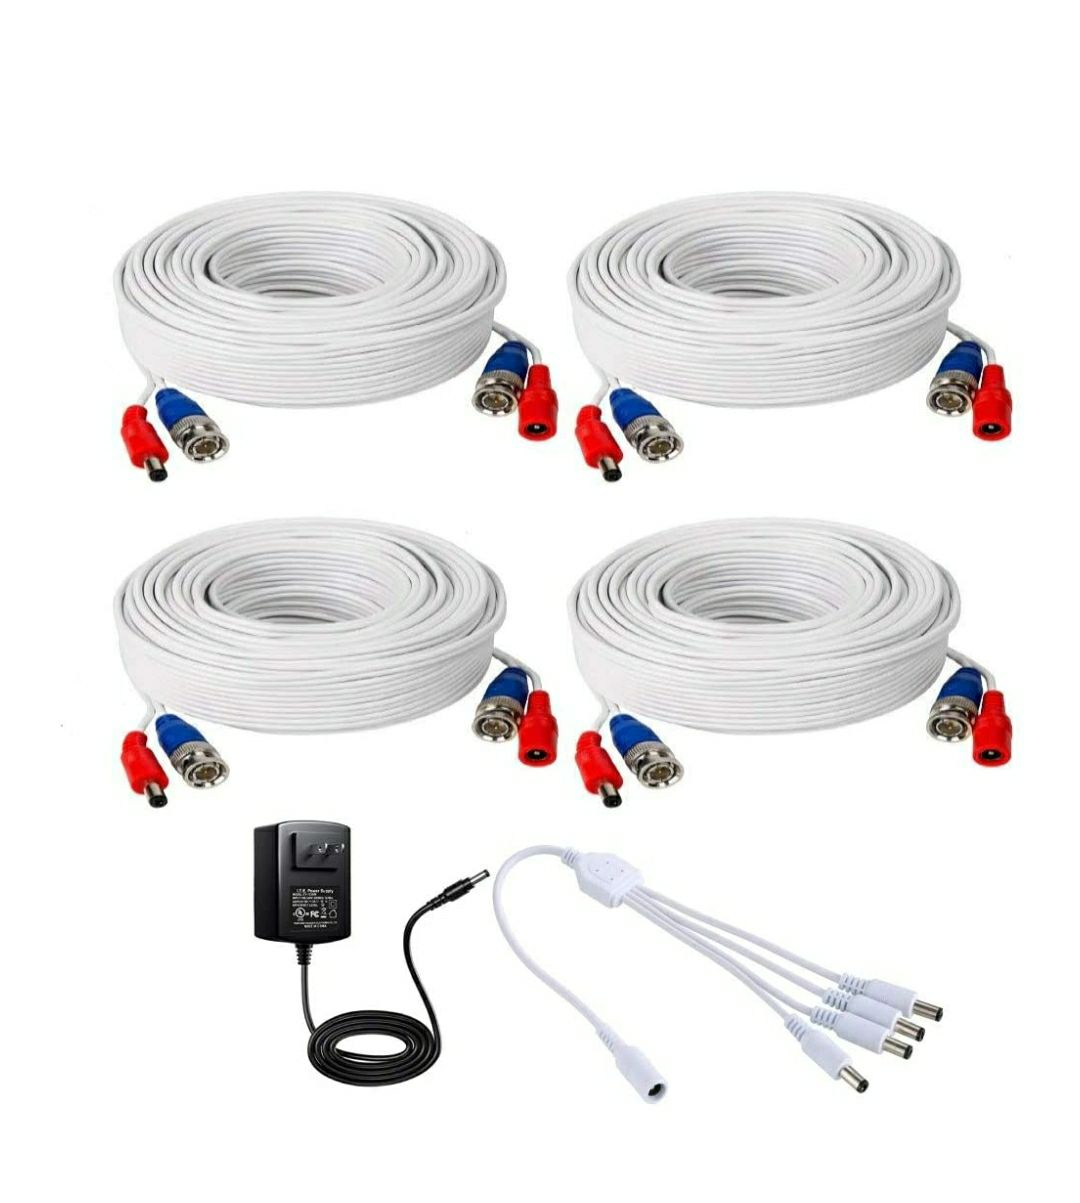 BNC Video Power Cable (4 Pack 60 Feet)